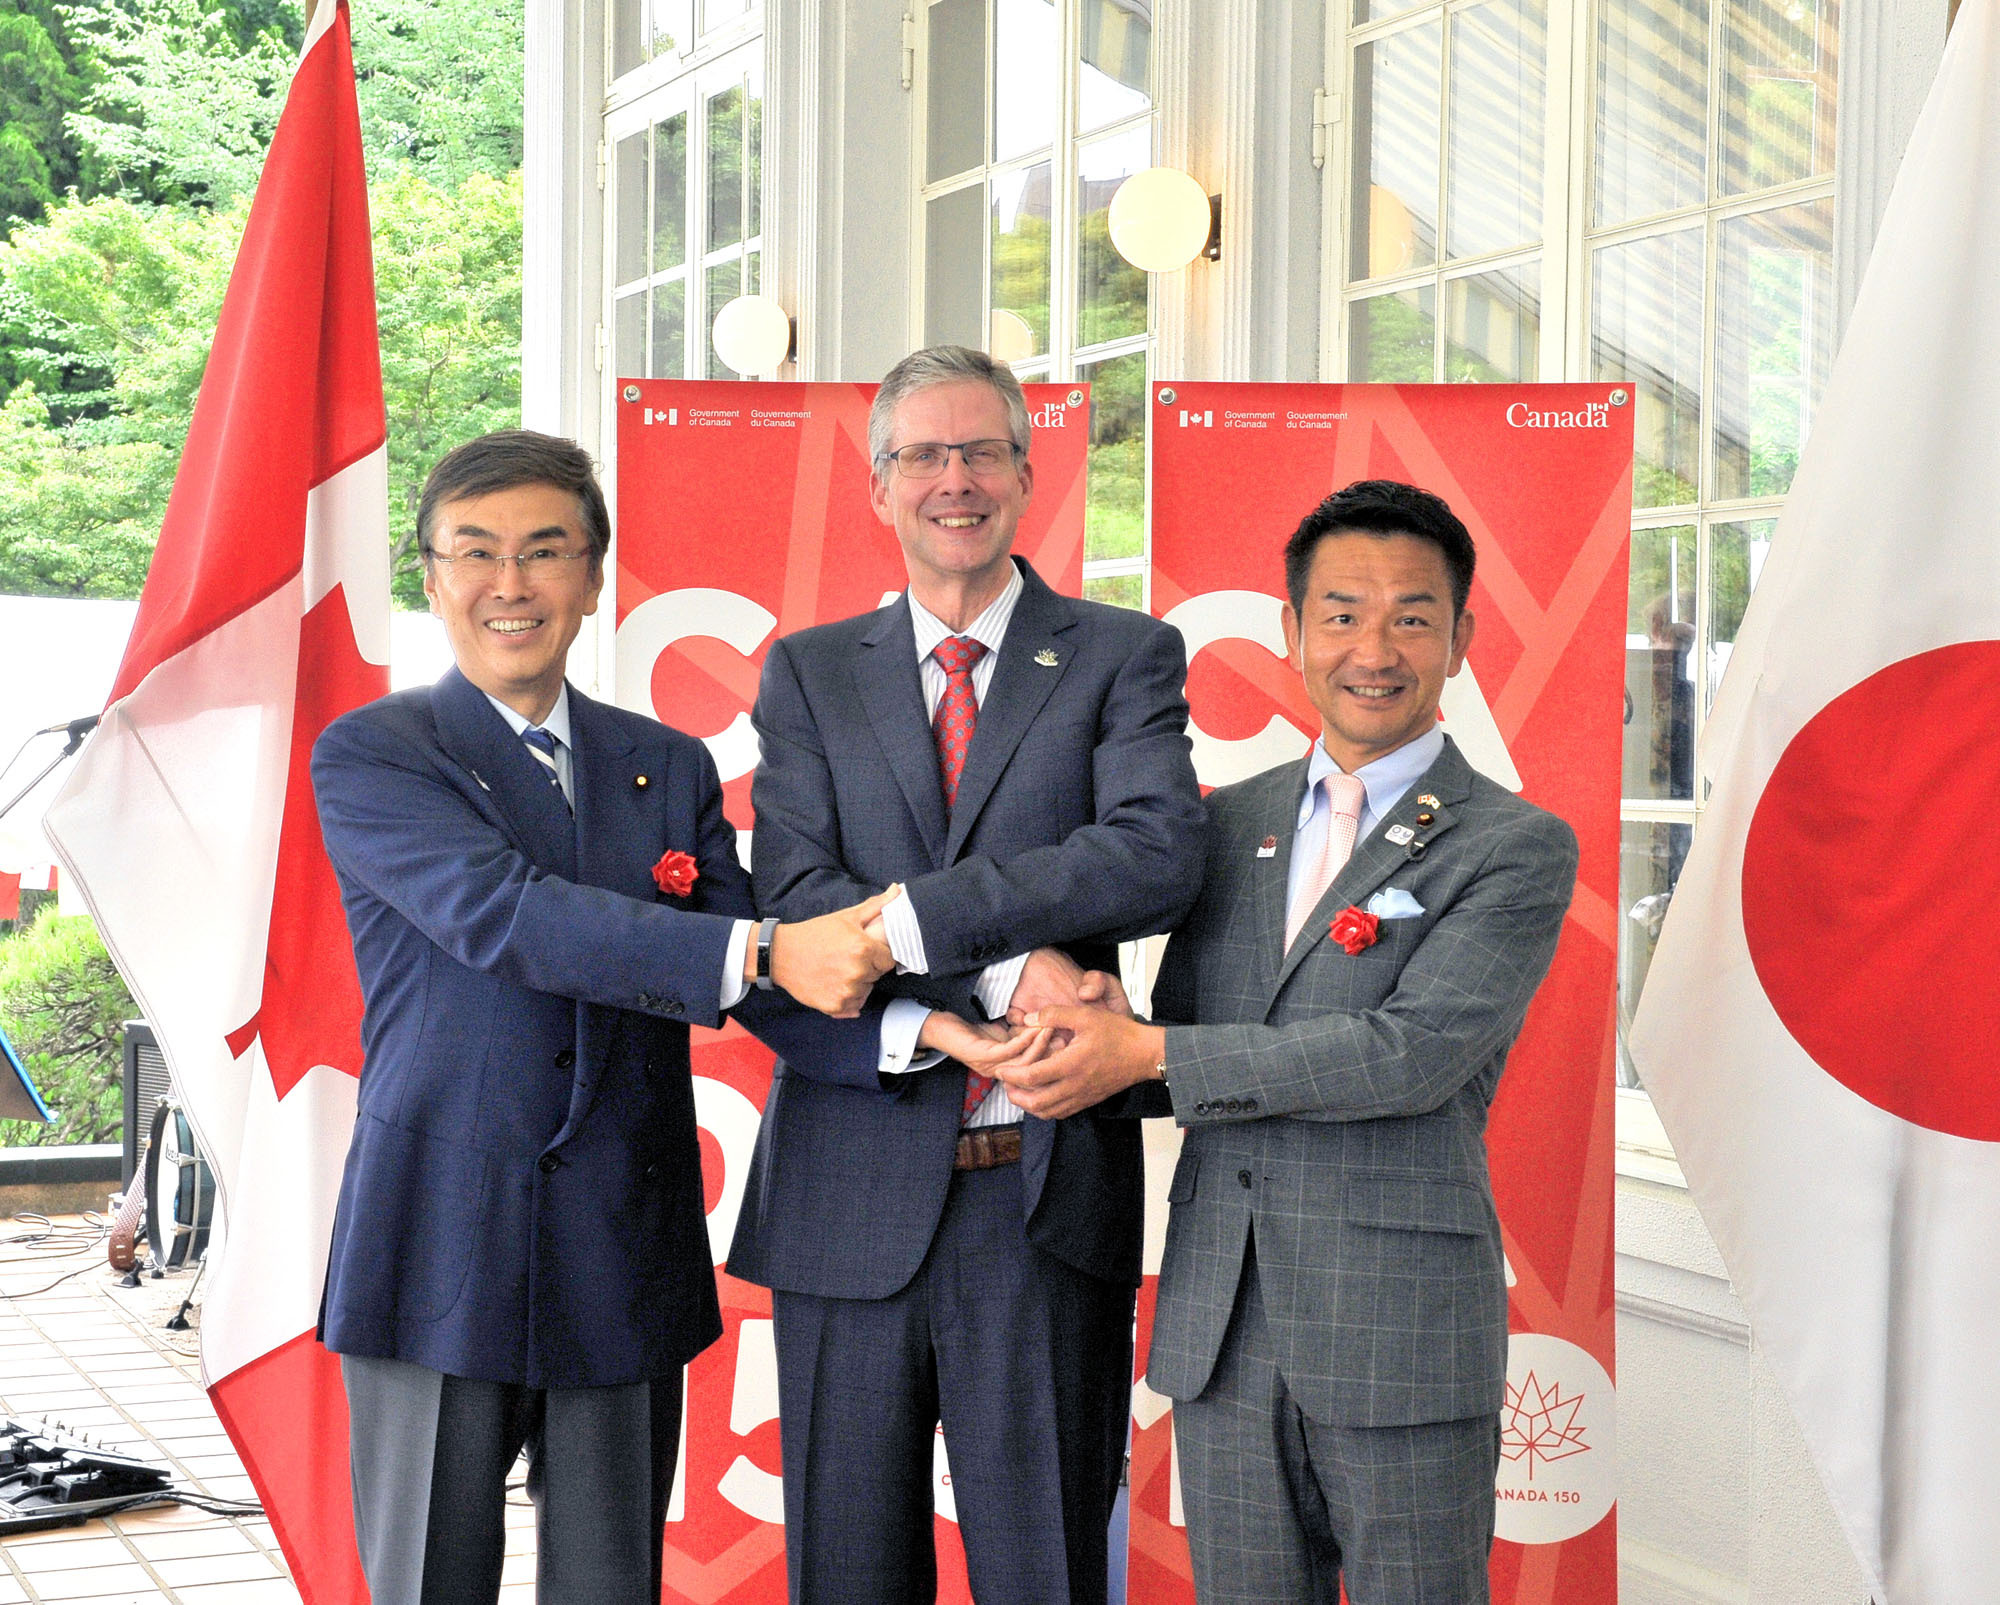 Canadian Ambassador Ian Burney (center) poses with Nobuteru Ishihara (left), minister in charge of economic revitalization, and Kiyoshi Odawara, parliamentary vice-minister of foreign affairs, during a reception to mark Canada Day in Tokyo on June 30. |  YOSHIAKI MIURA